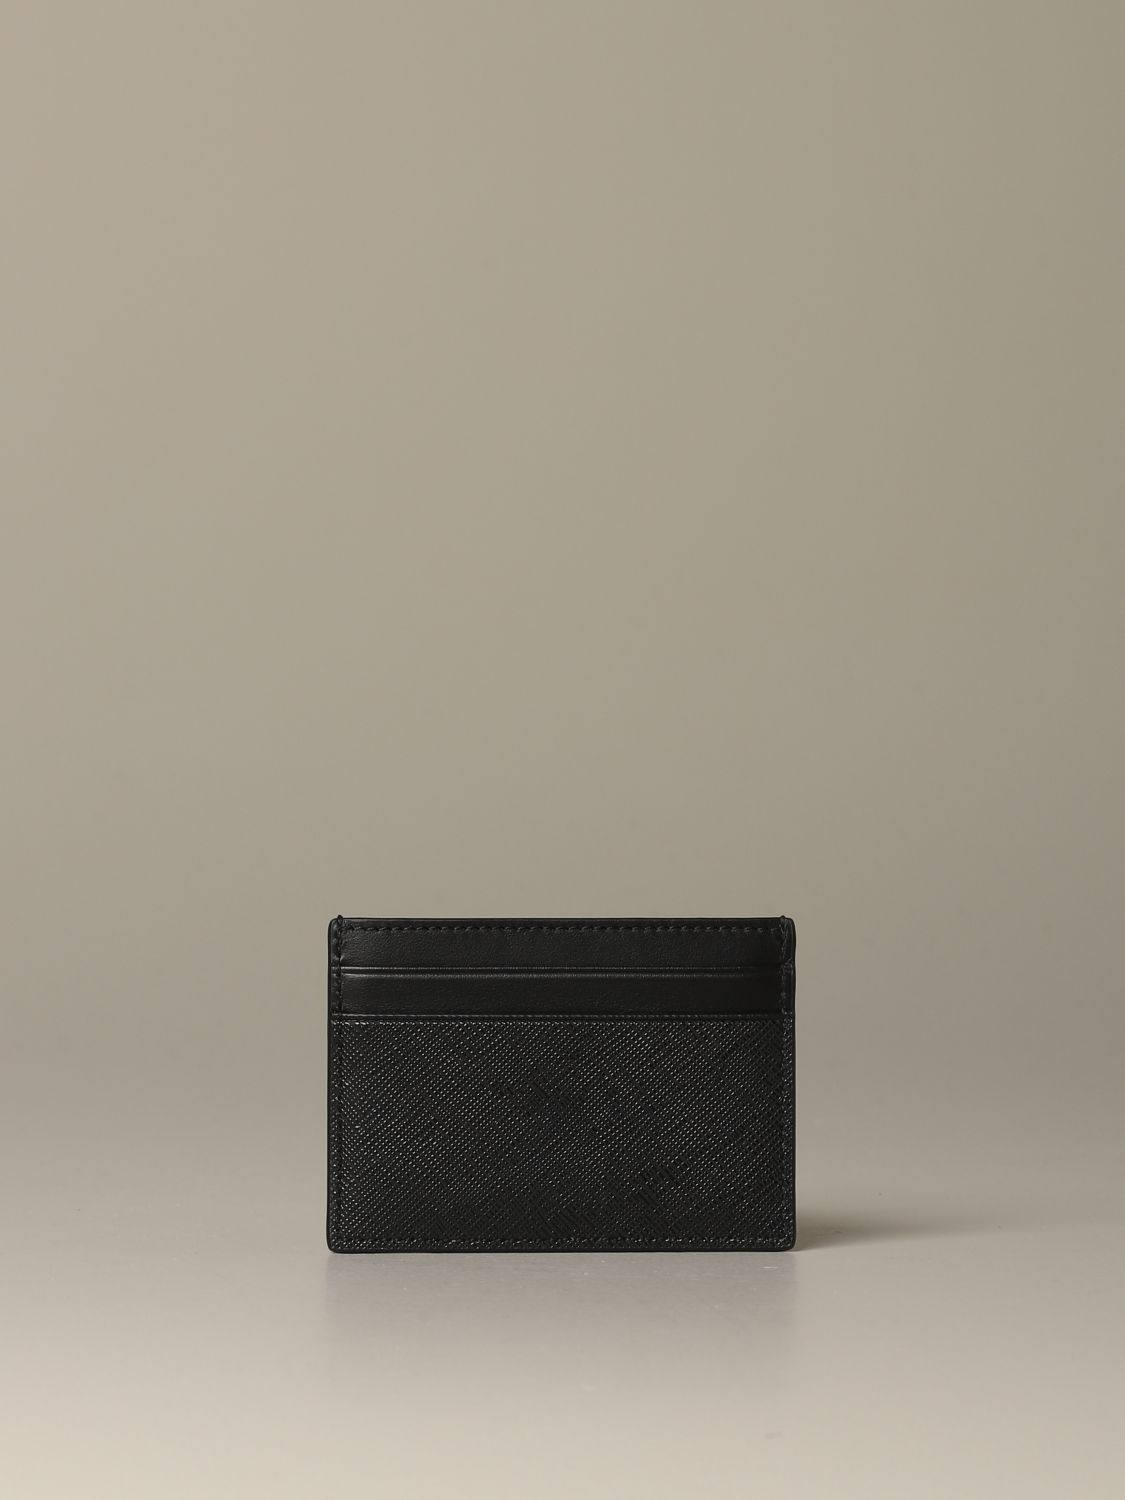 Wallet Bally: Bhar.of Bally credit card holder in coated canvas with trainspotting red 1